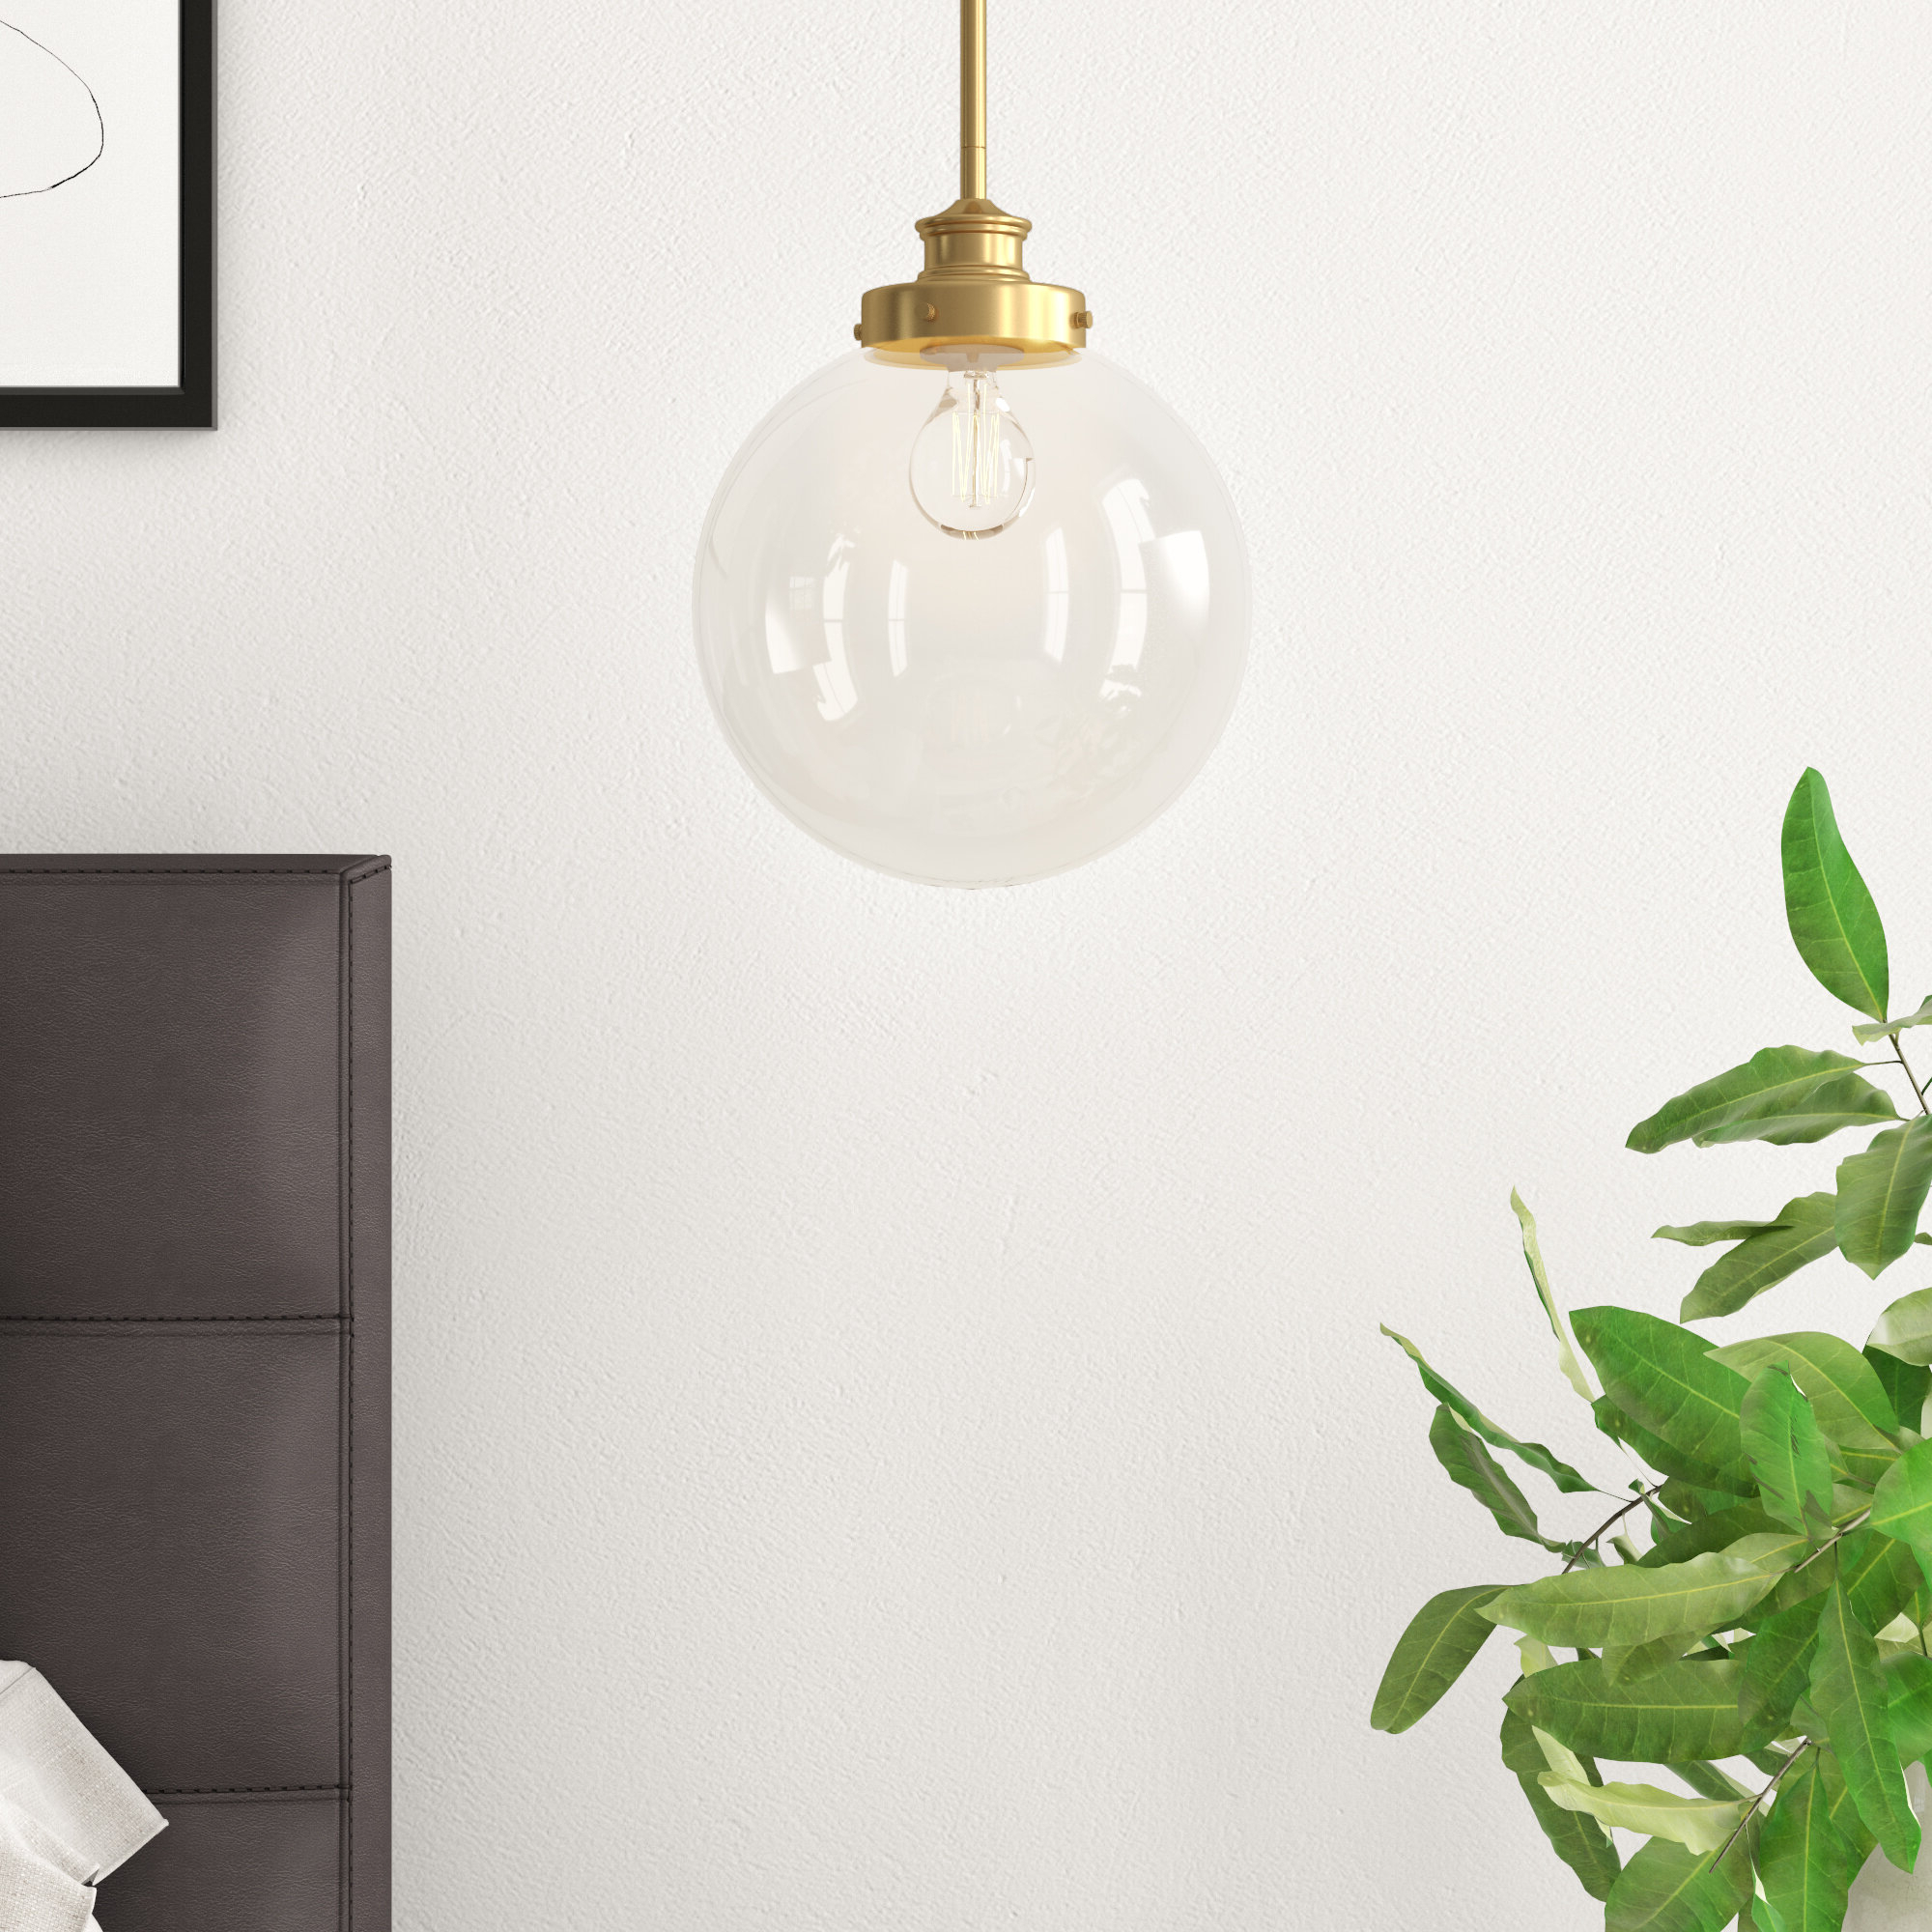 Gehry 1 Light Single Globe Pendants With Most Popular Cayden 1 Light Single Globe Pendant (View 8 of 25)